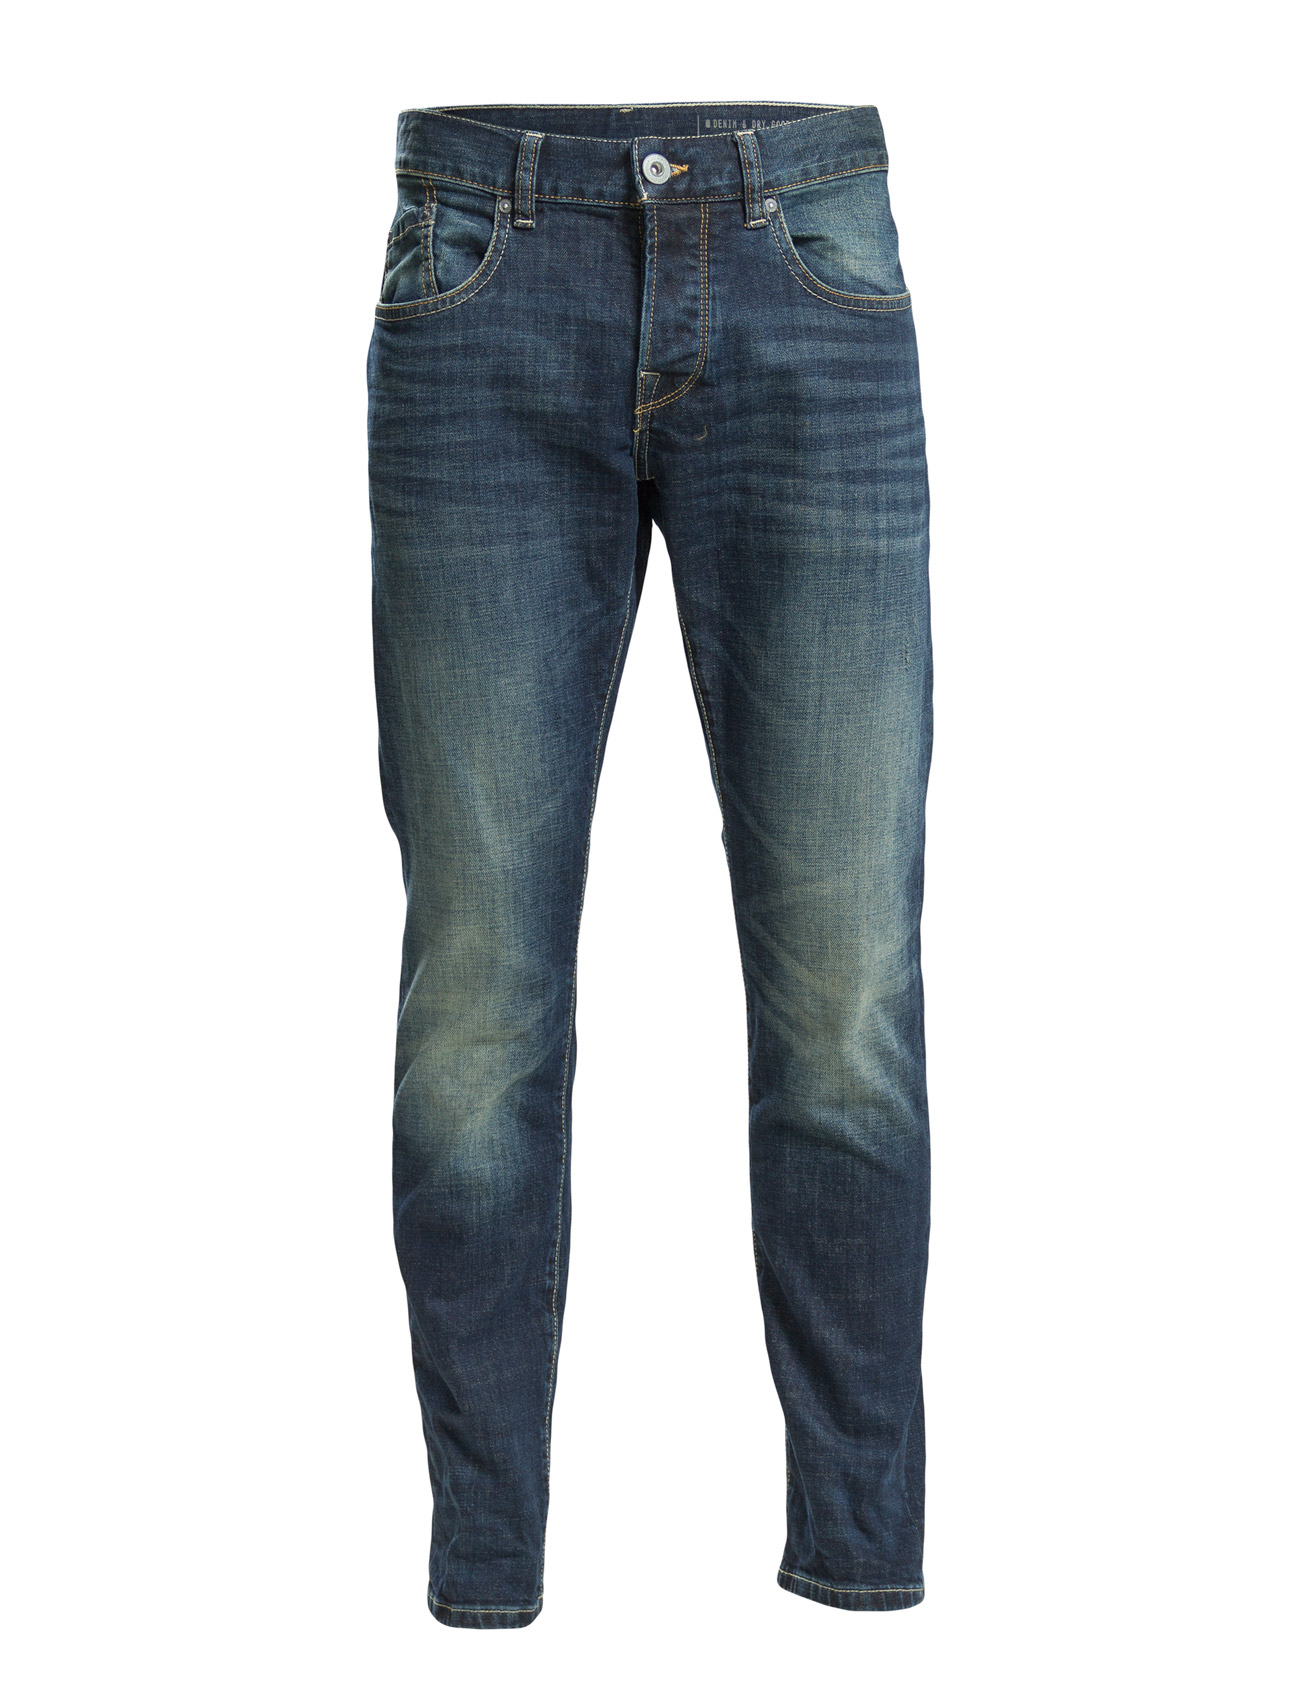 Pants Denim EDC by Esprit Jeans til Mænd i